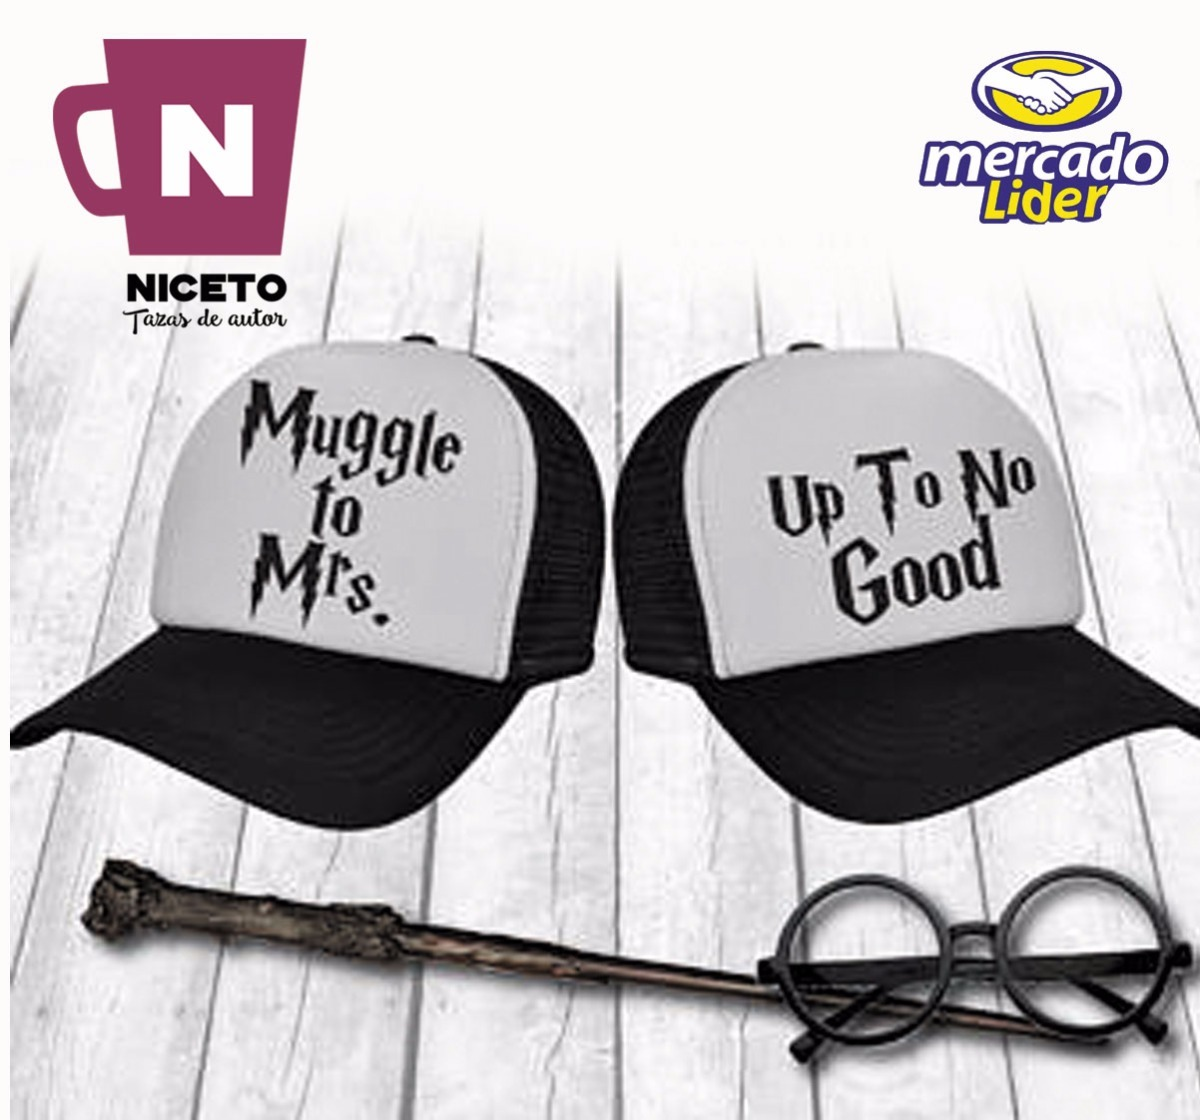 harry potter gorra trucker unica calidad alta mod 13 niceto. Cargando zoom. be0fb4d29fd